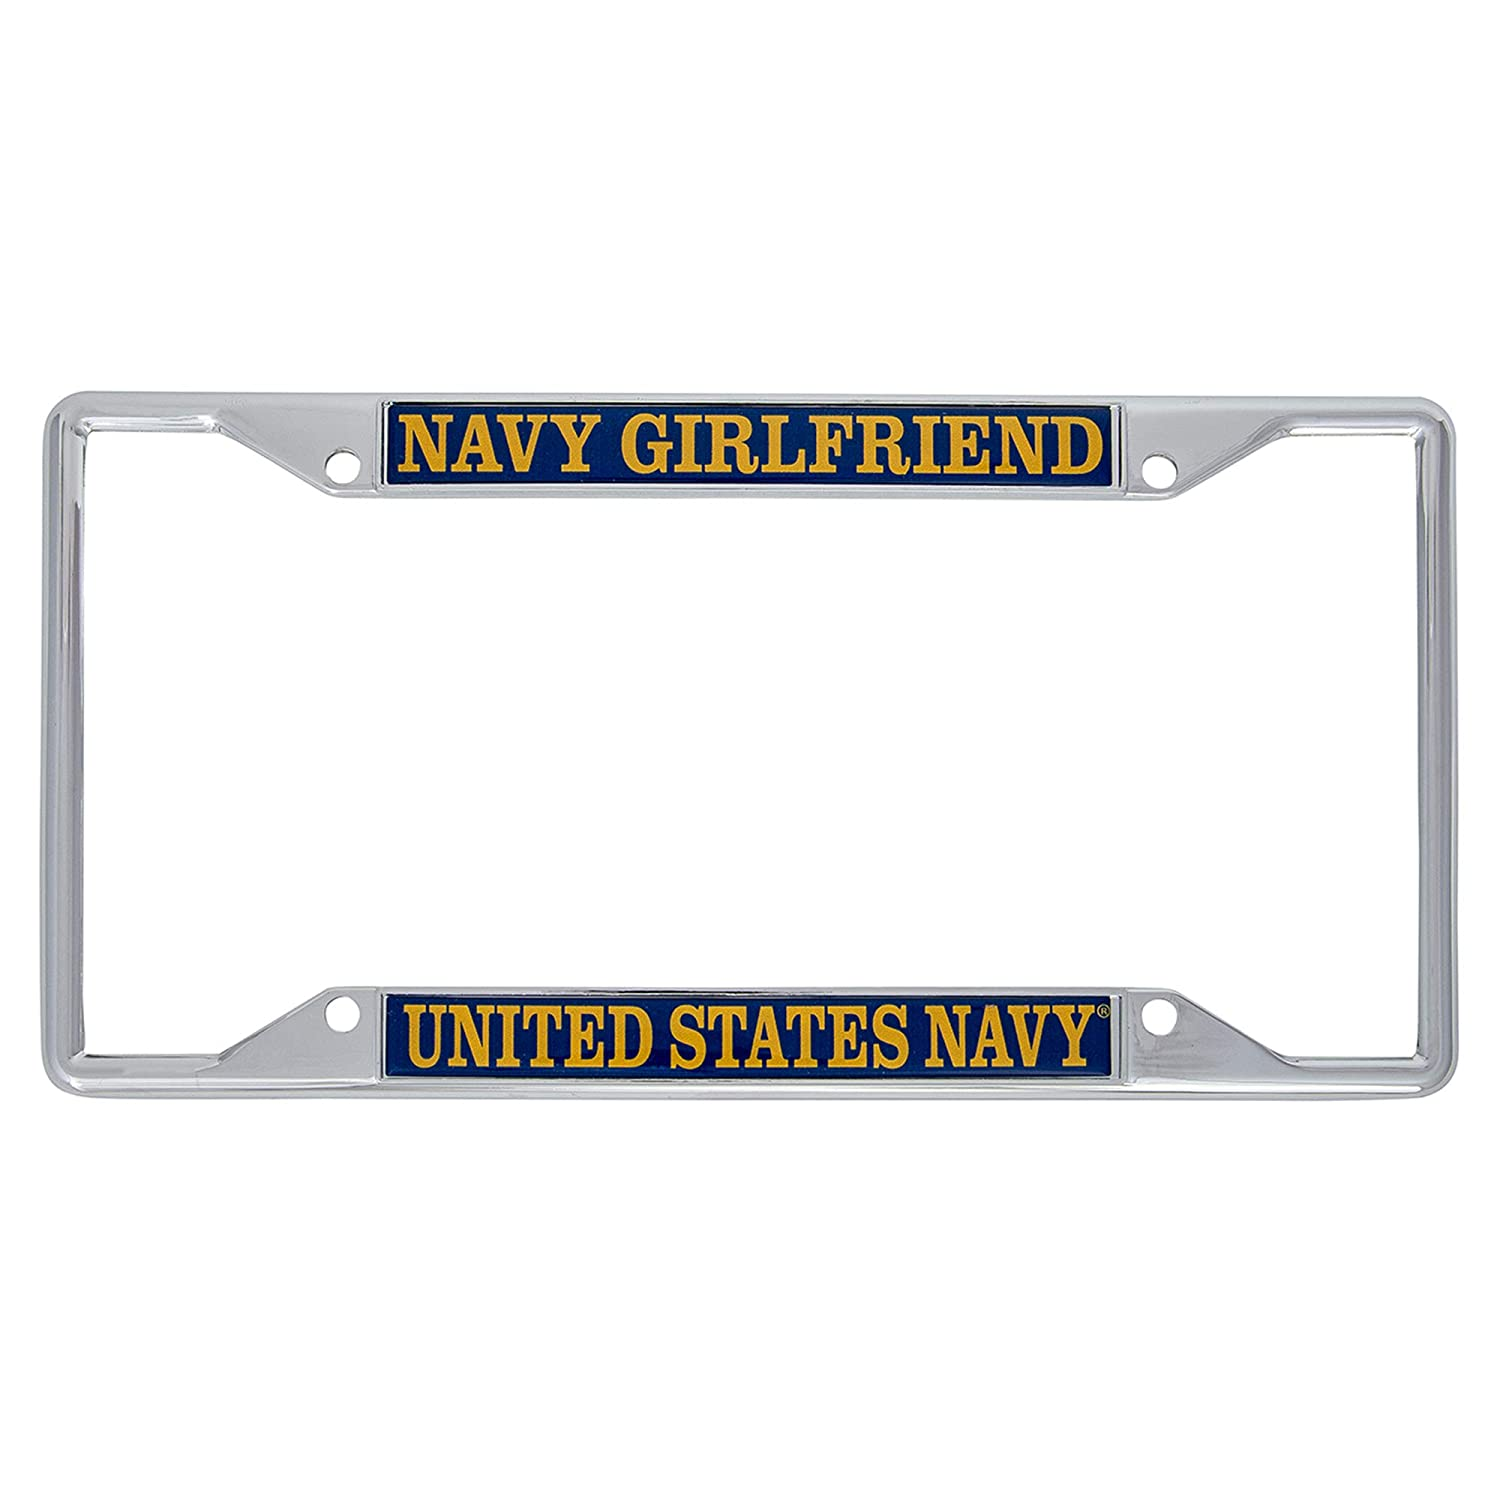 Desert Cactus US Navy Girlfriend License Plate Frame for Front Back of Car Officially Licensed United States